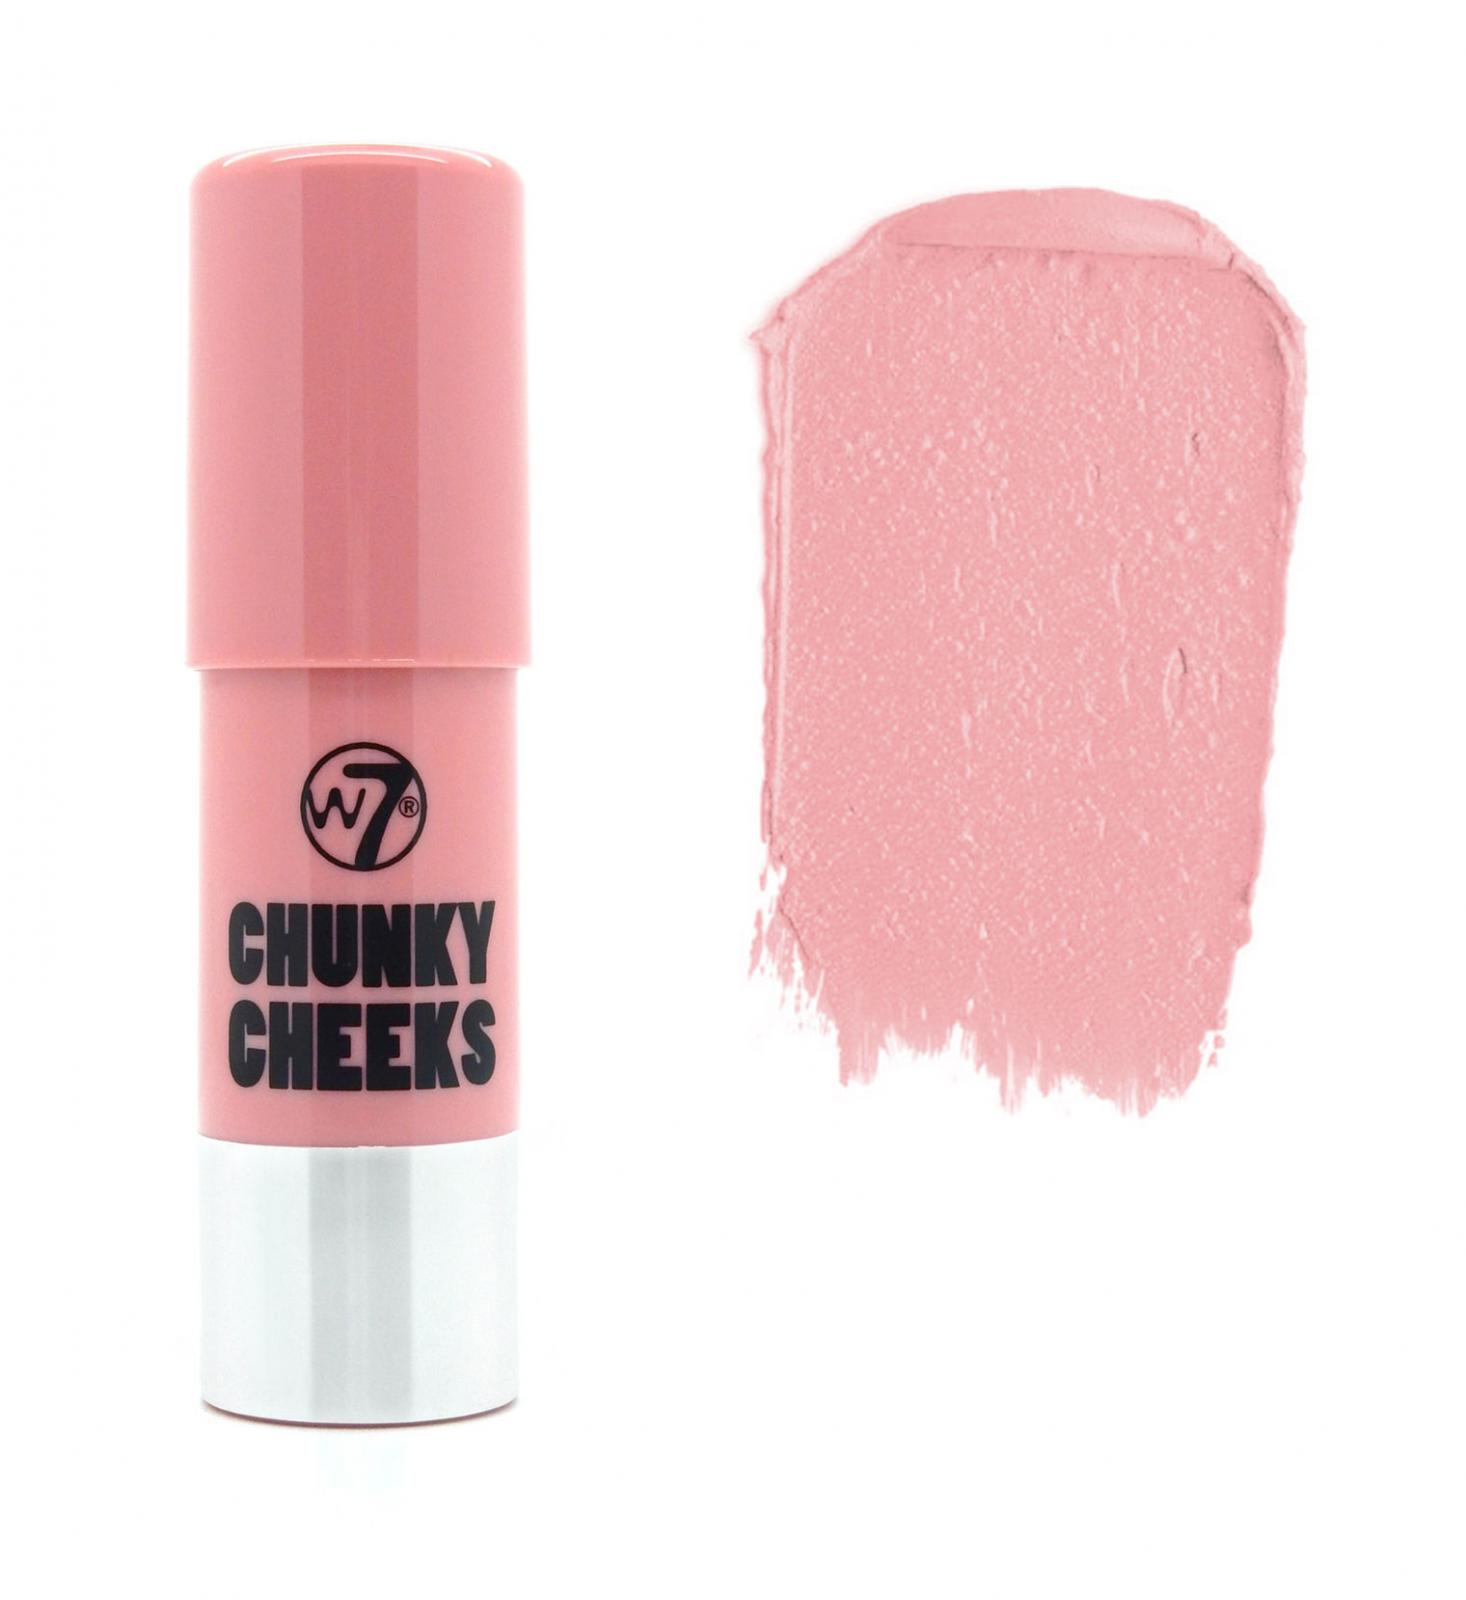 W7 Chunky Cheeks - New York - Blush Cremos Rezistent La Transfer